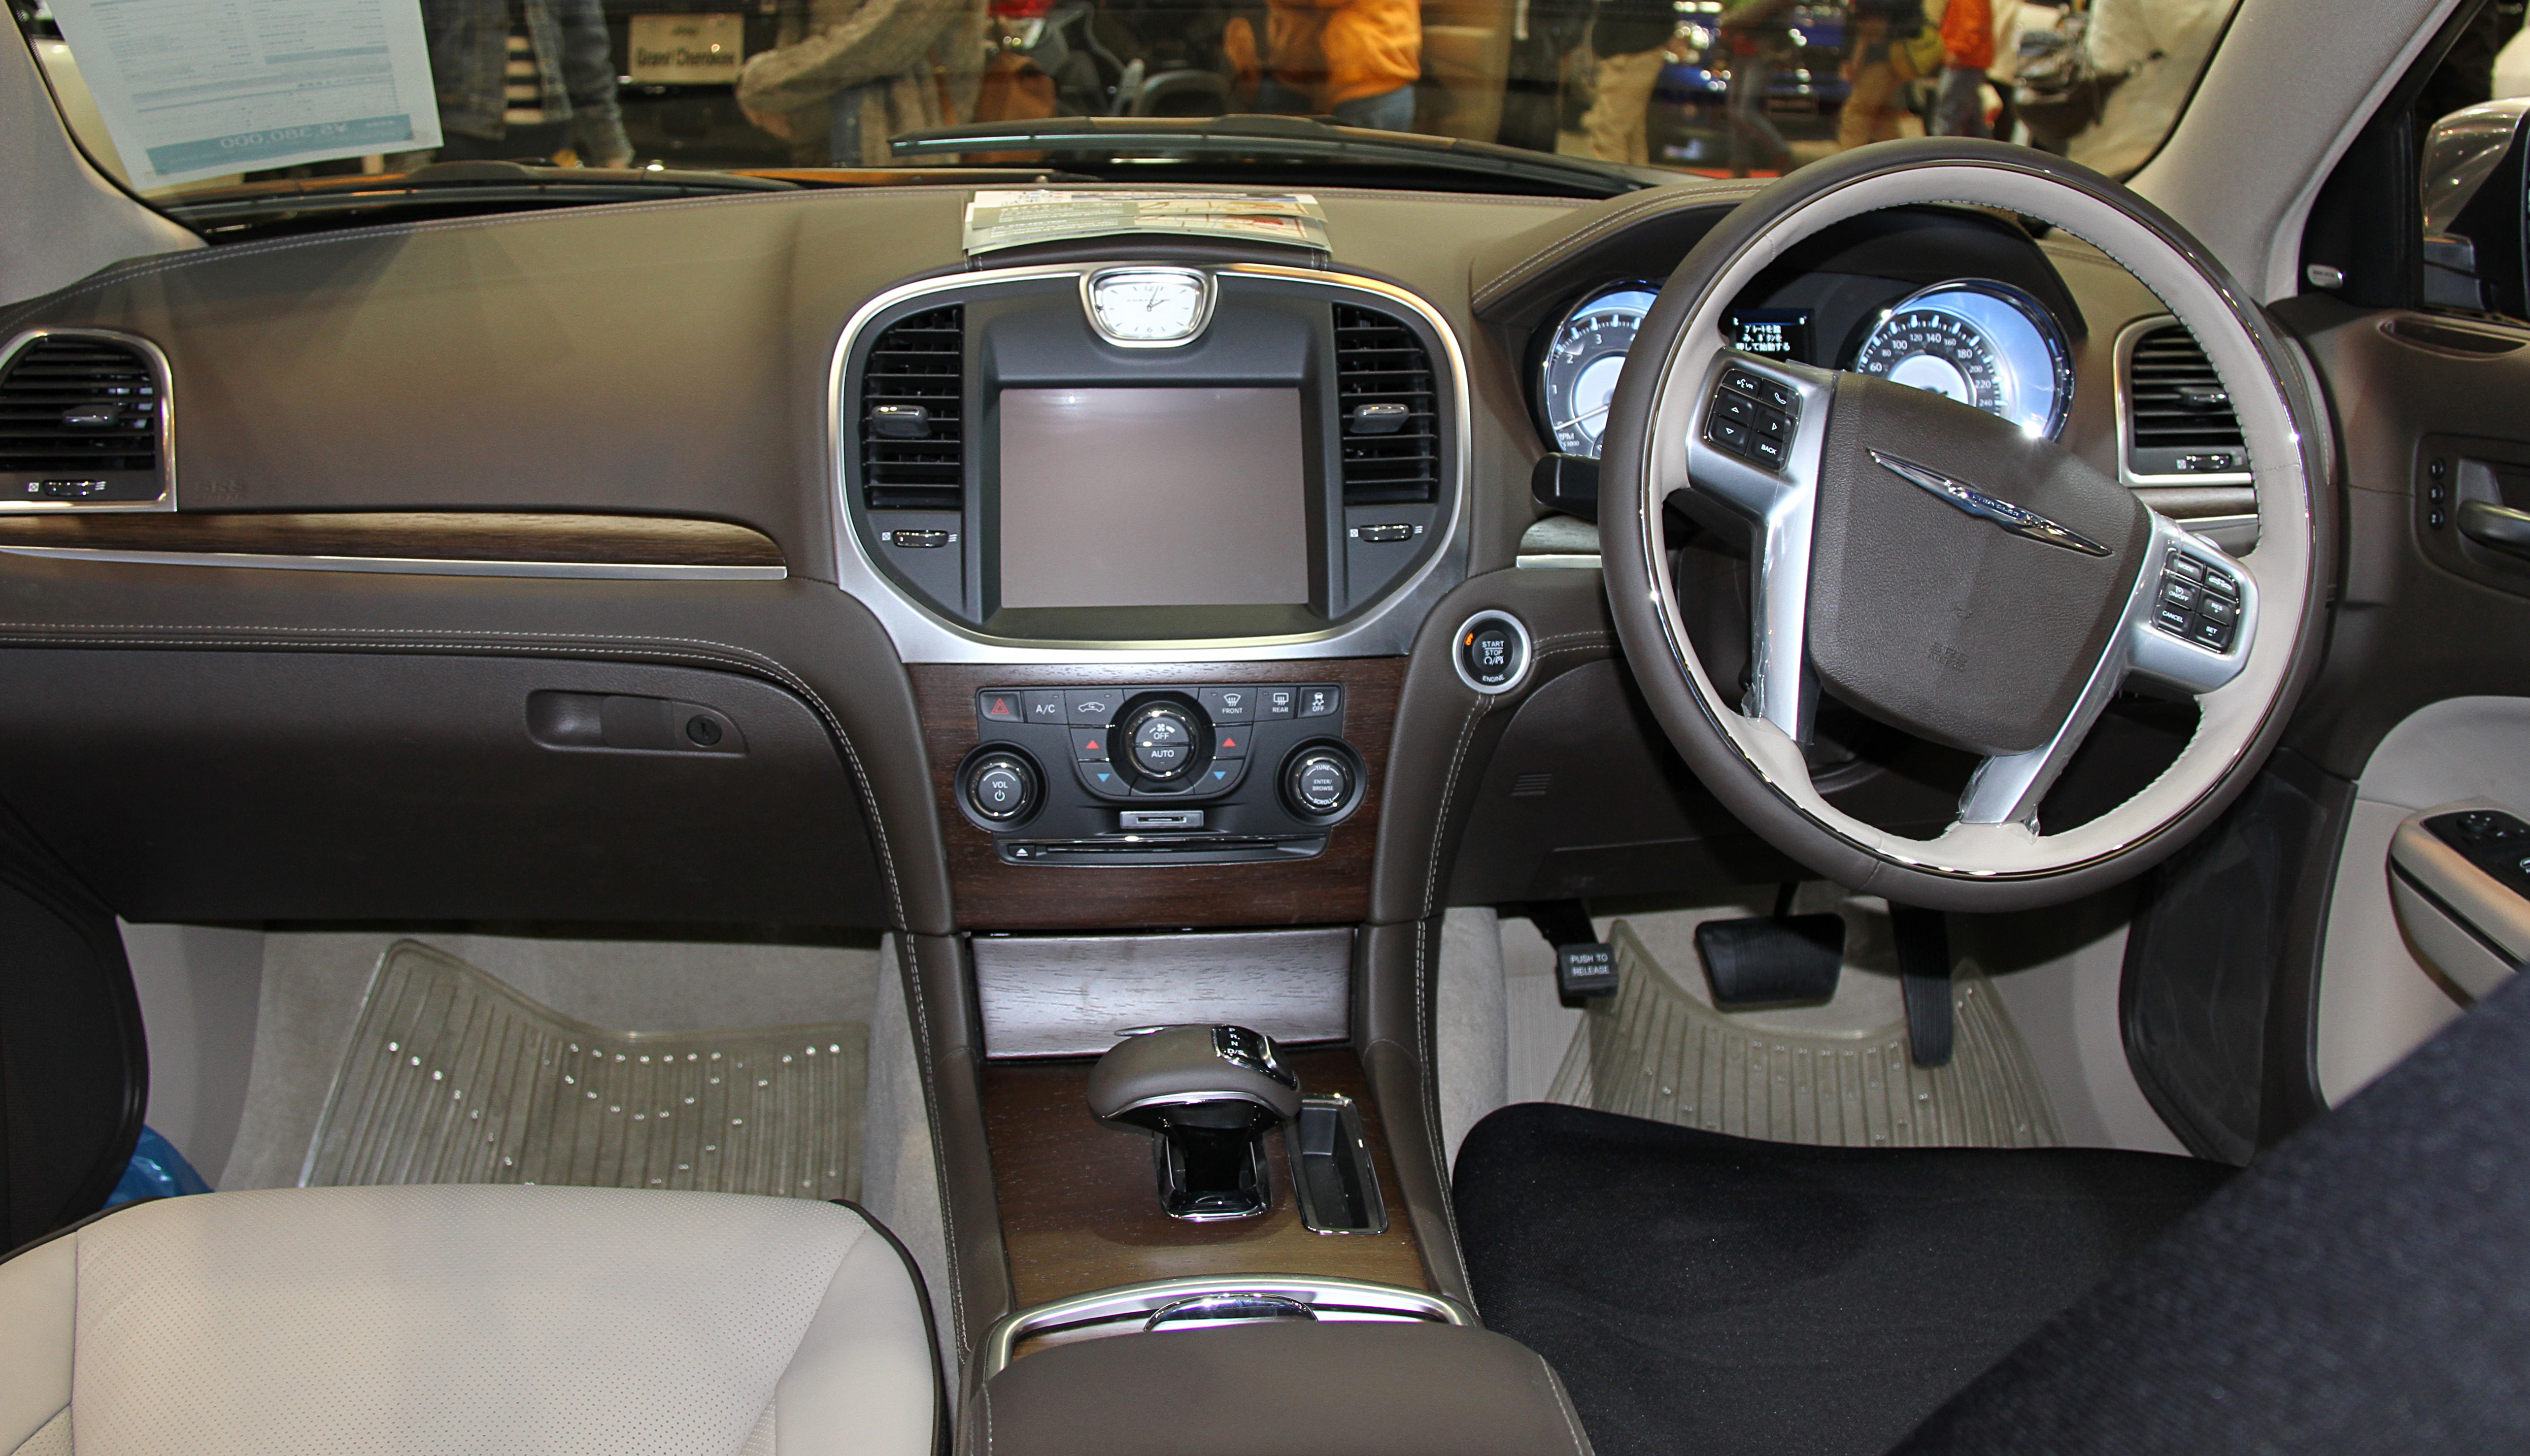 Worksheet. FileChrysler 300C Luxury interiorjpg  Wikimedia Commons